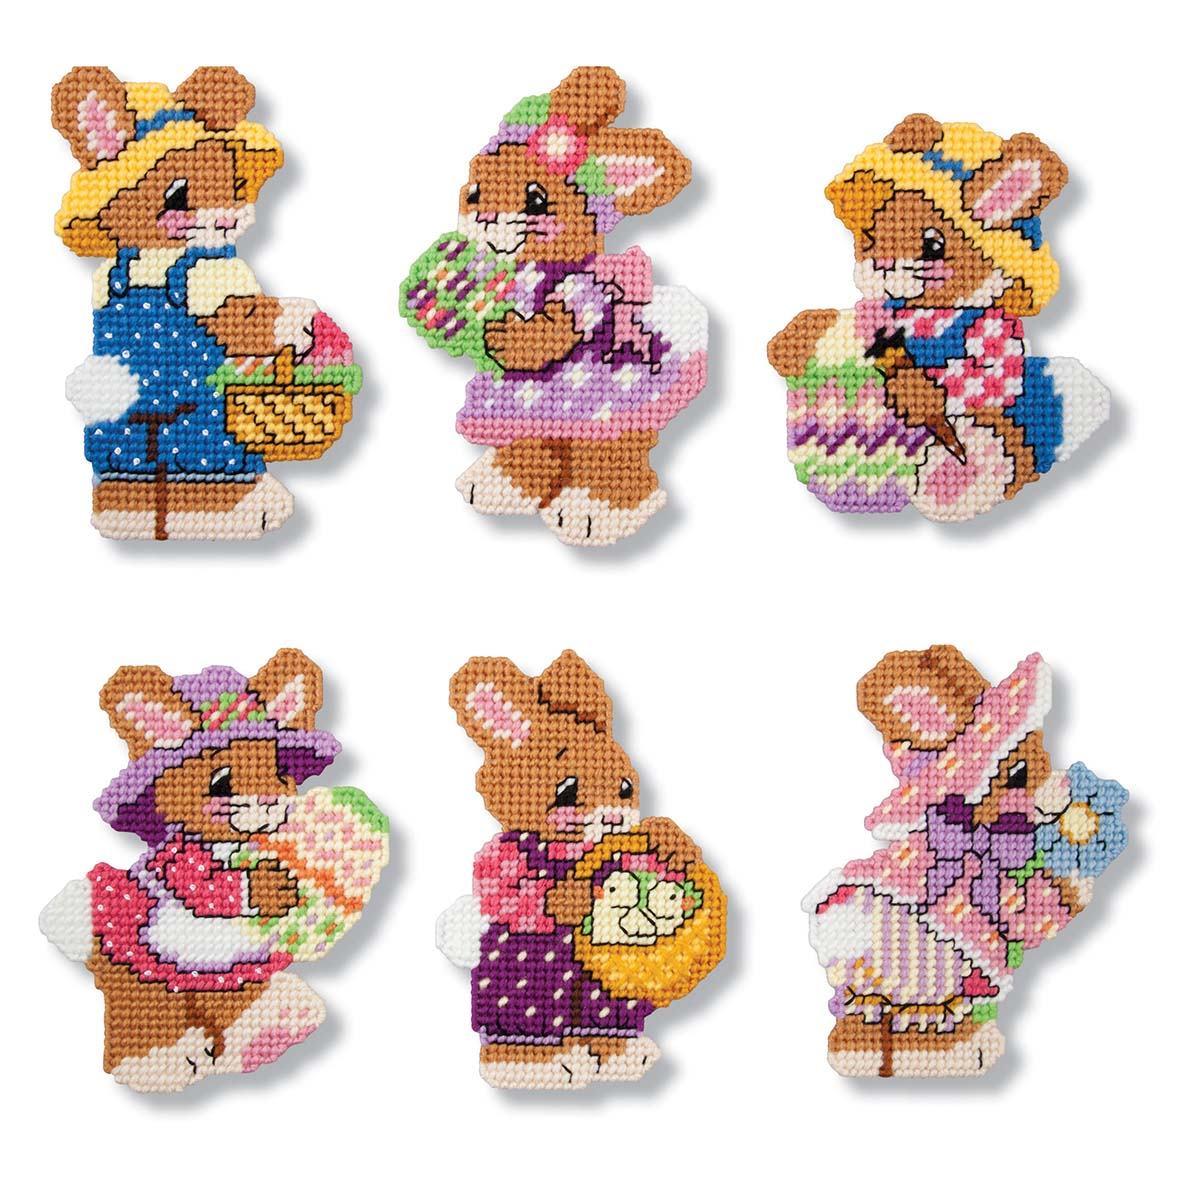 Herrschners® Bunny Tails Ornaments Plastic Canvas Kit